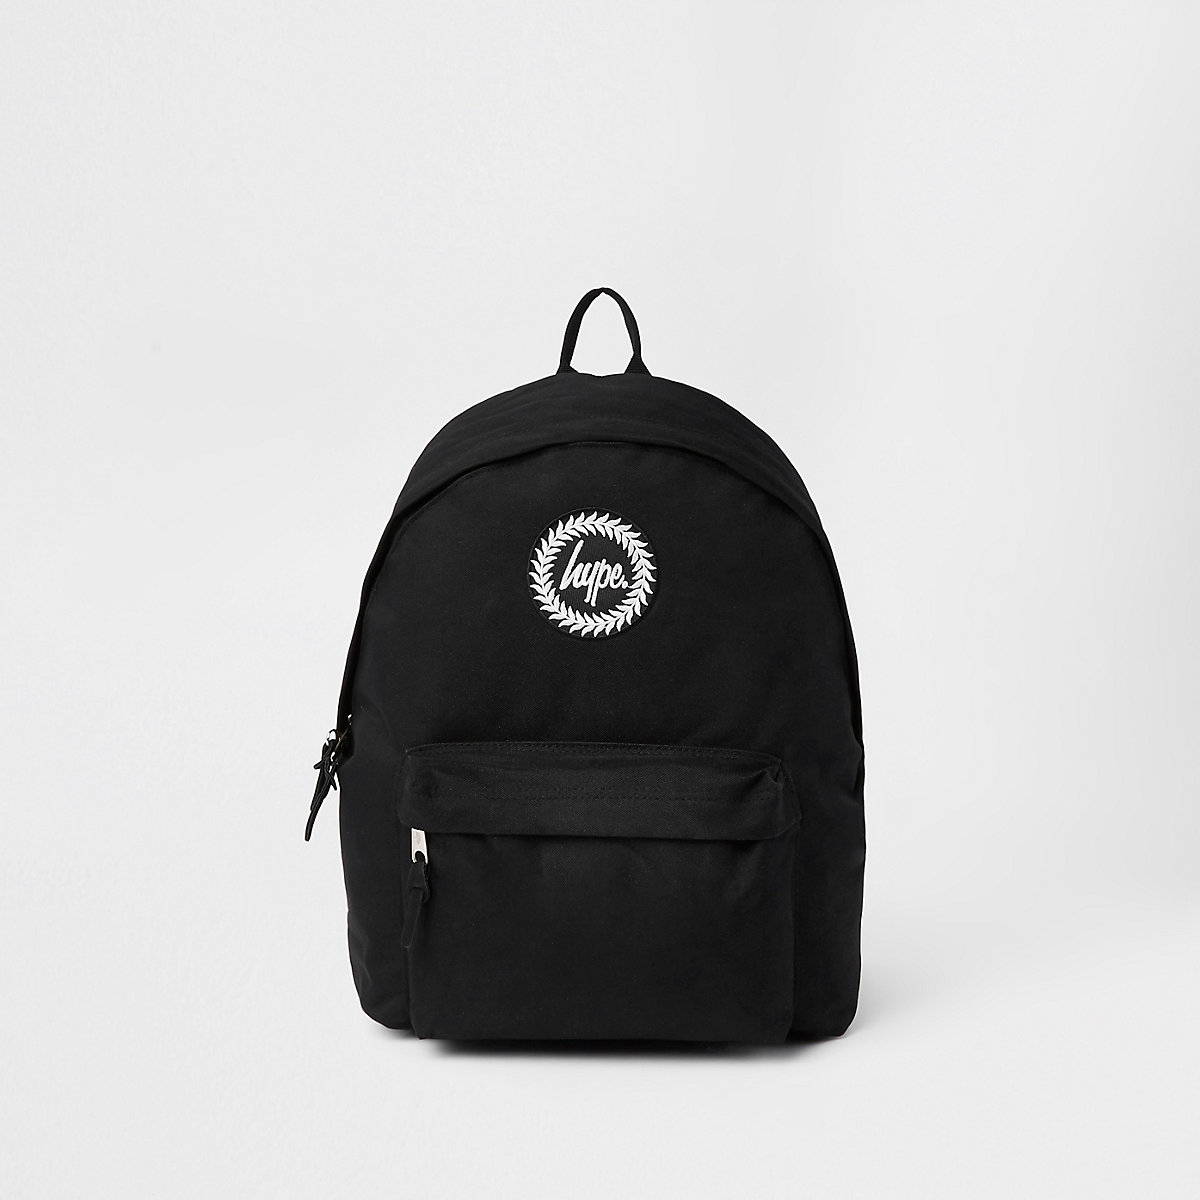 cd737df2fb66 Hype black embroidery backpack - Backpacks   Rucksacks - Bags - men